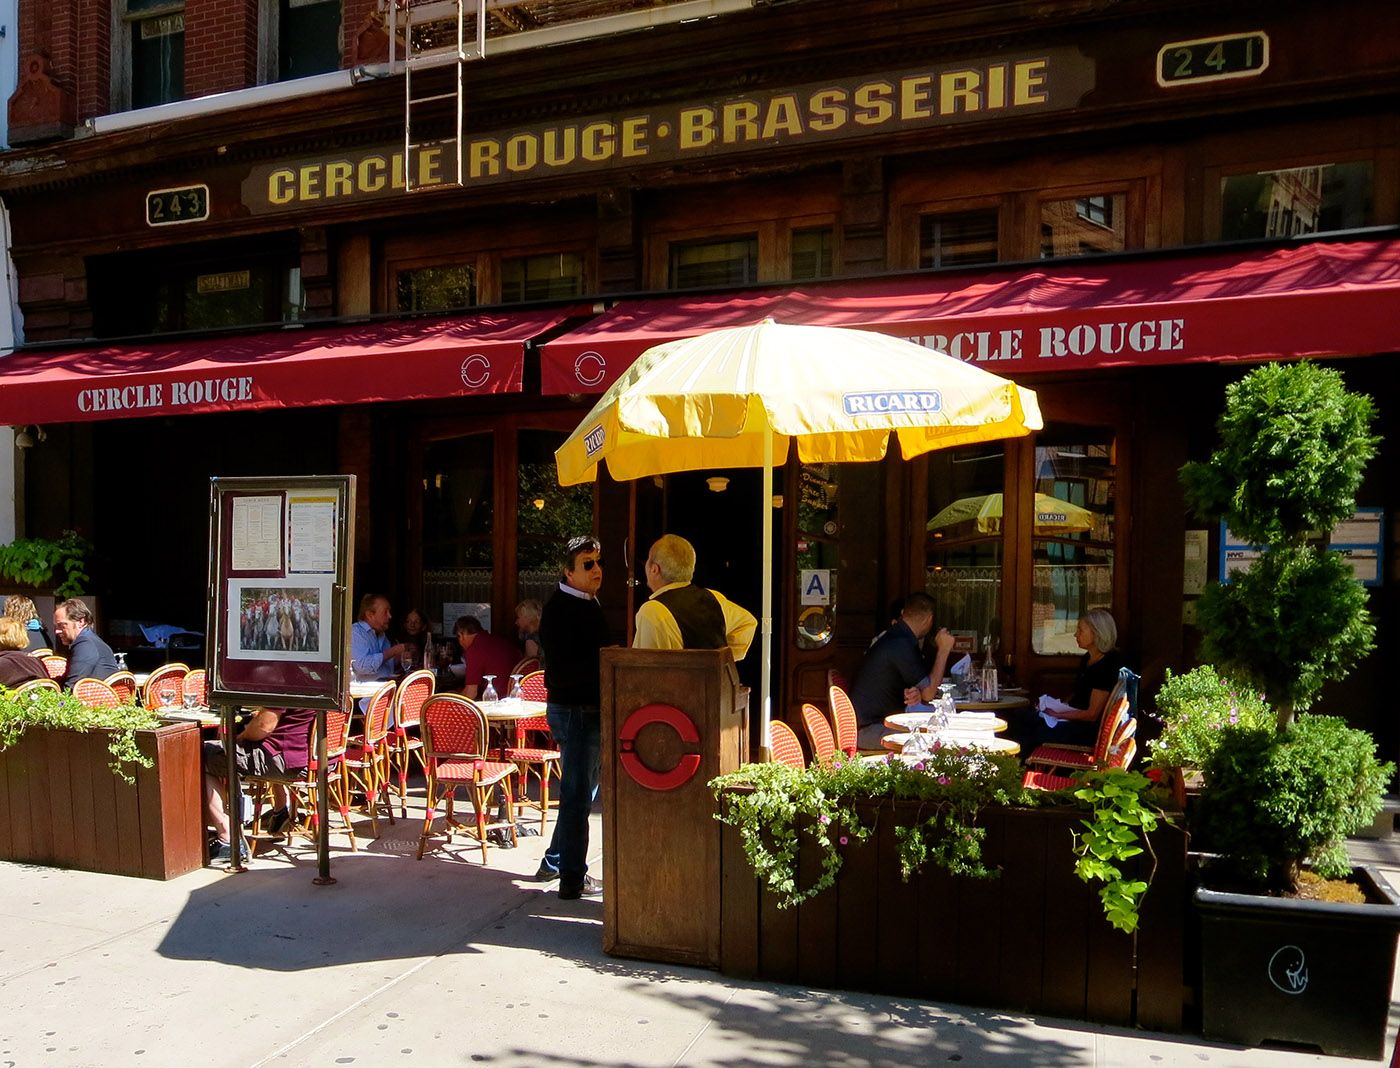 Cercle Rouge 241 W Broadway New York Eats Nyc Broadway News